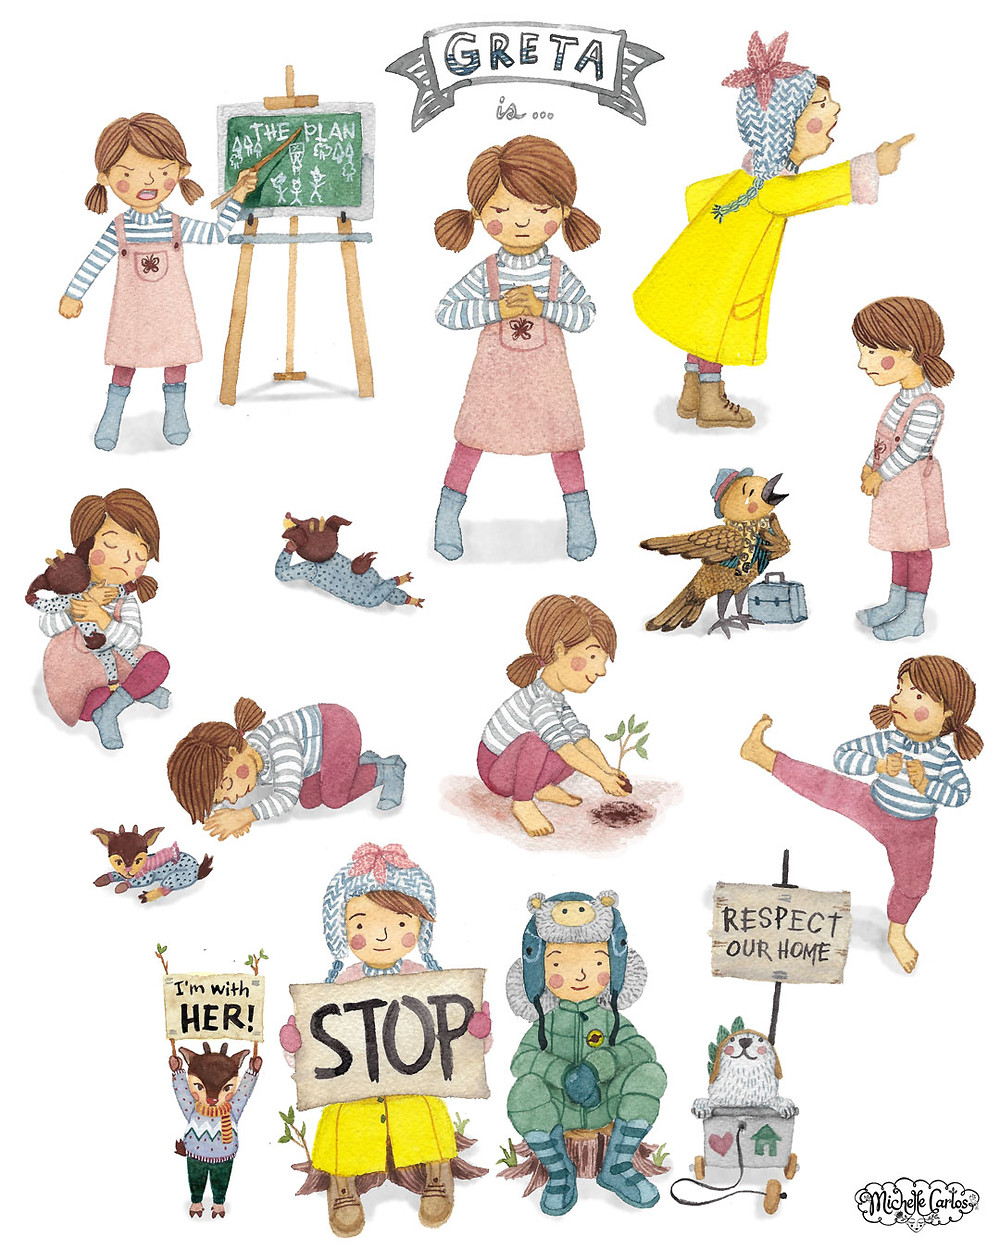 Various illustrated poses of a girl